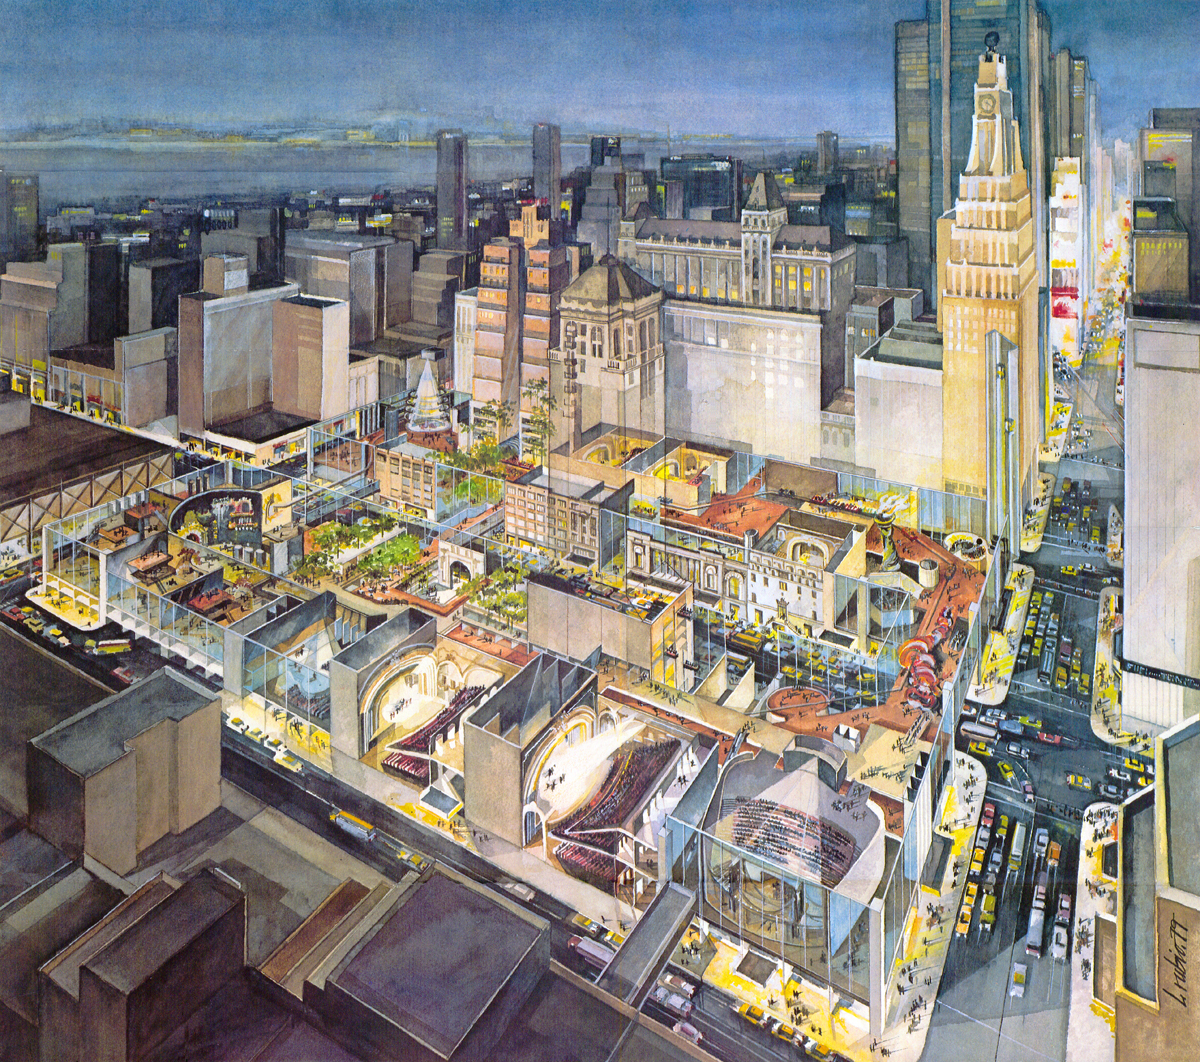 """A City at 42nd Street"" proposal, which restored the facade of the Times Square while demolishing the rest for an exhibit atrium."